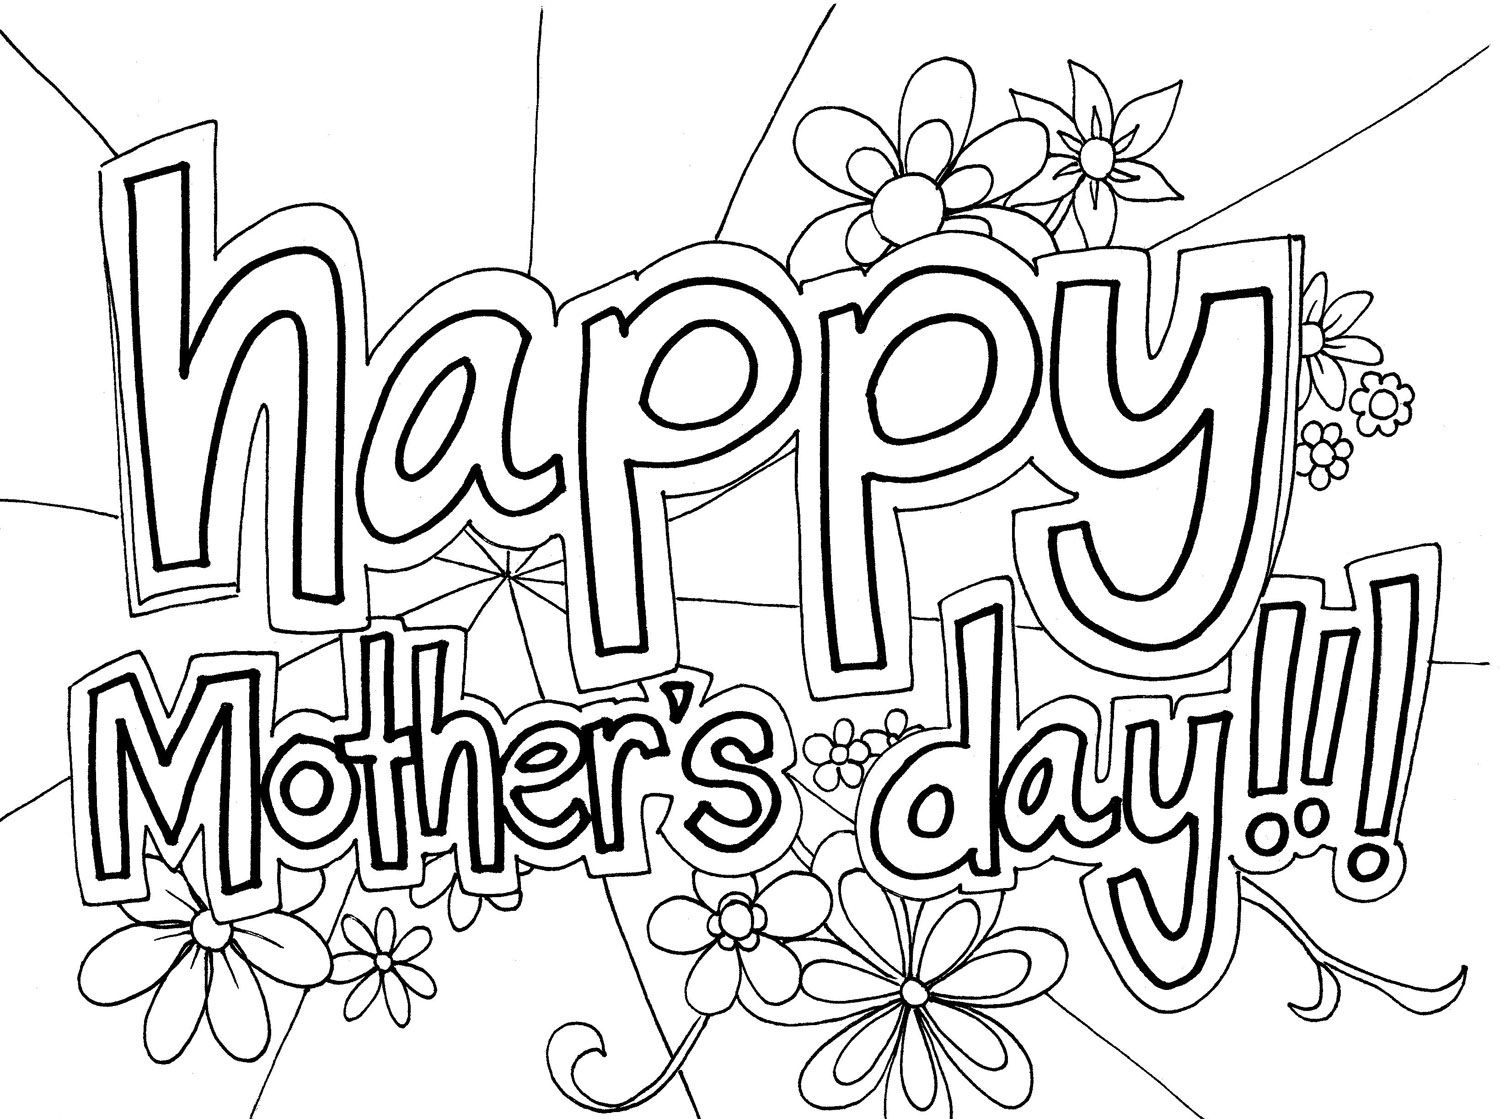 Happy Mothers Day Coloring Pages 2019 - Free Printable Calendar - Free Printable Mothers Day Coloring Cards